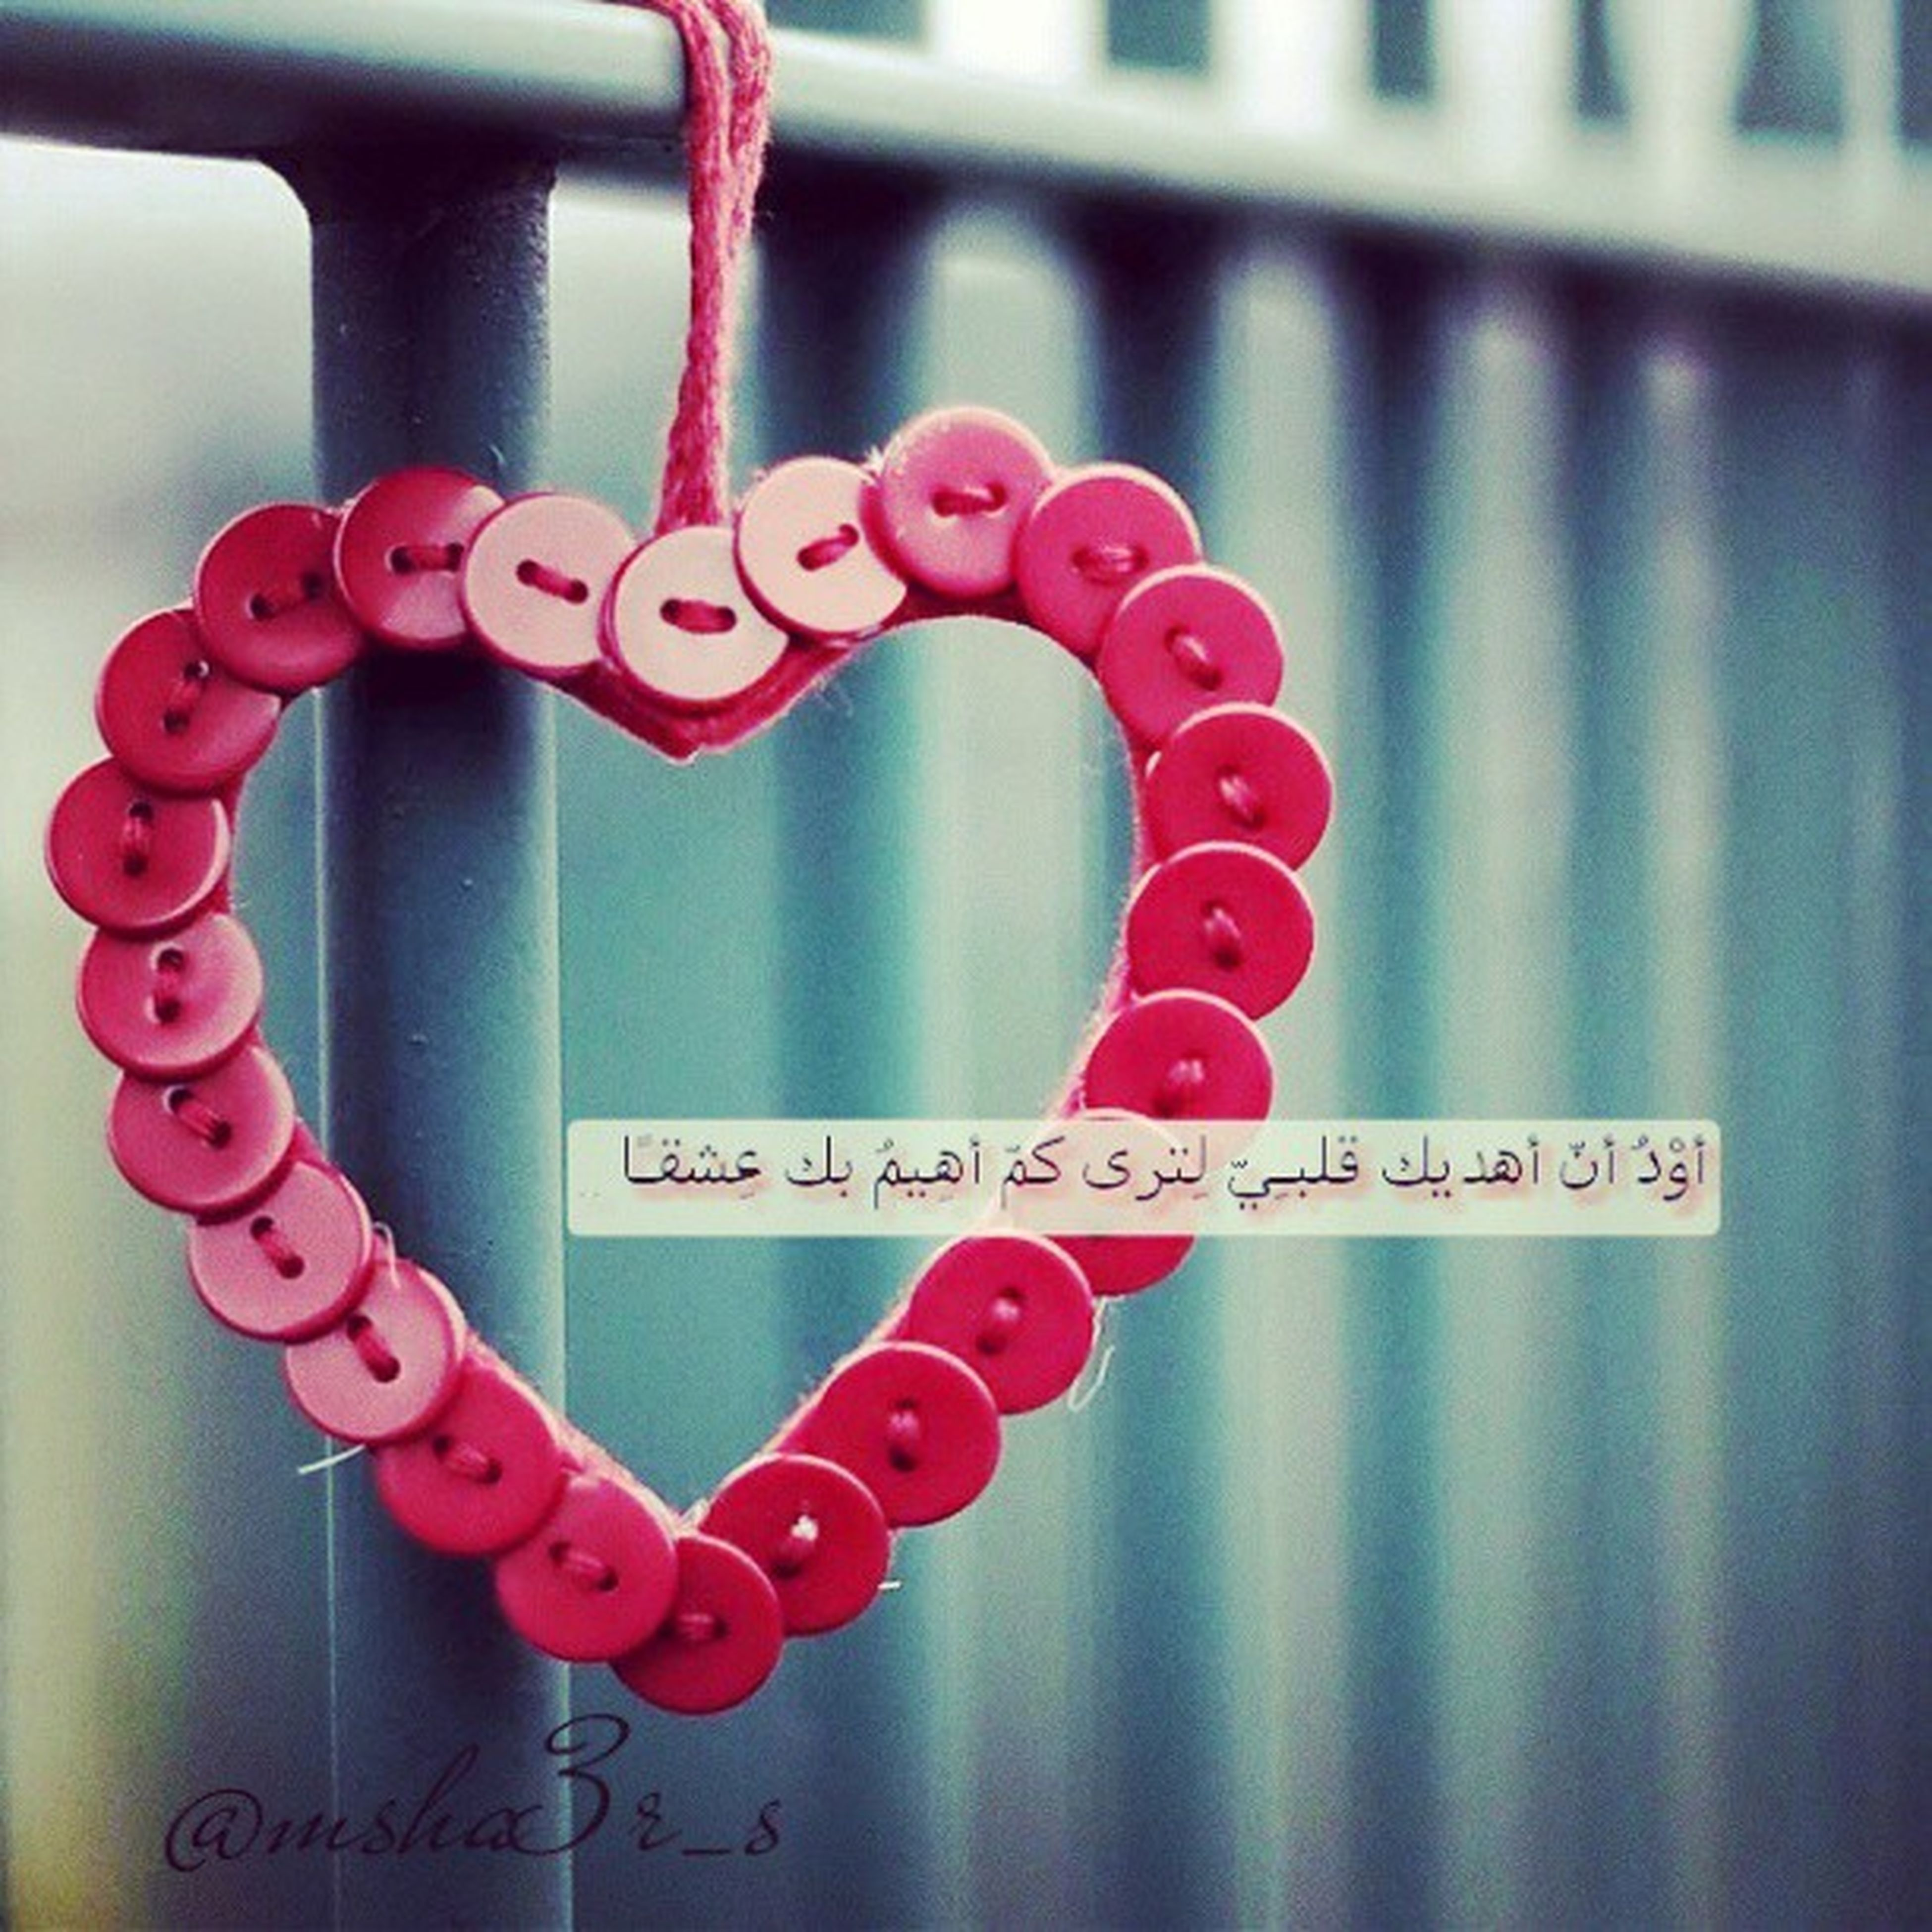 text, western script, communication, red, indoors, close-up, non-western script, focus on foreground, heart shape, capital letter, hanging, metal, sign, no people, information sign, love, wall - building feature, pink color, message, information